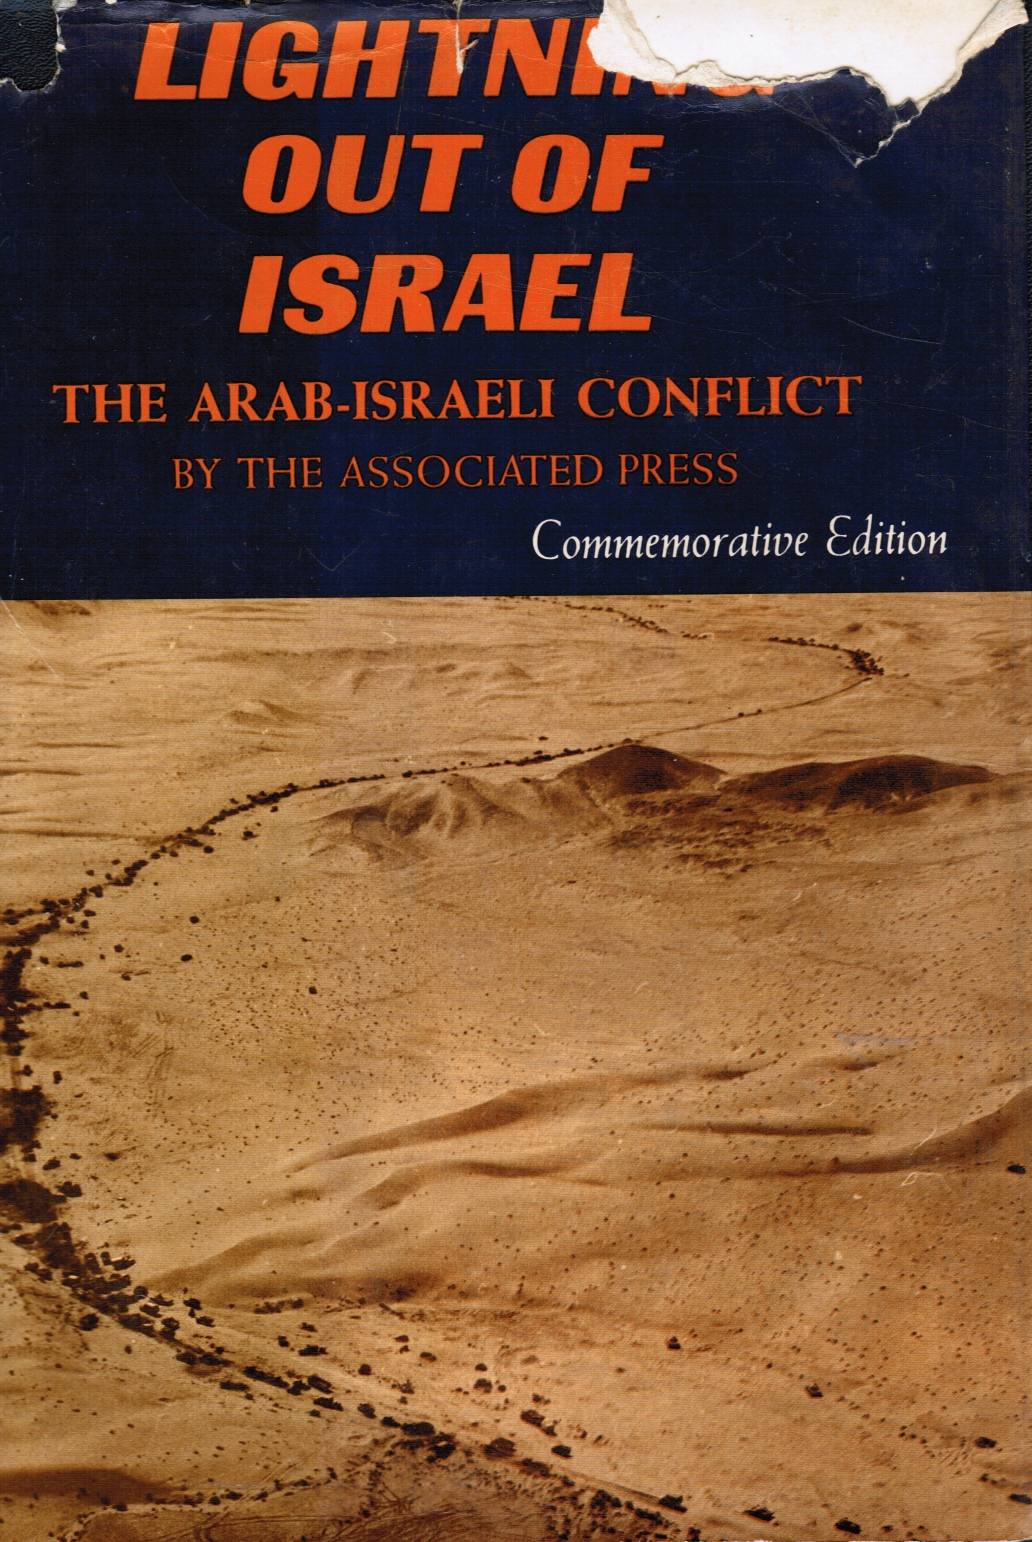 Image for Lightning out of Israel: COMMEMORATIVE EDITION